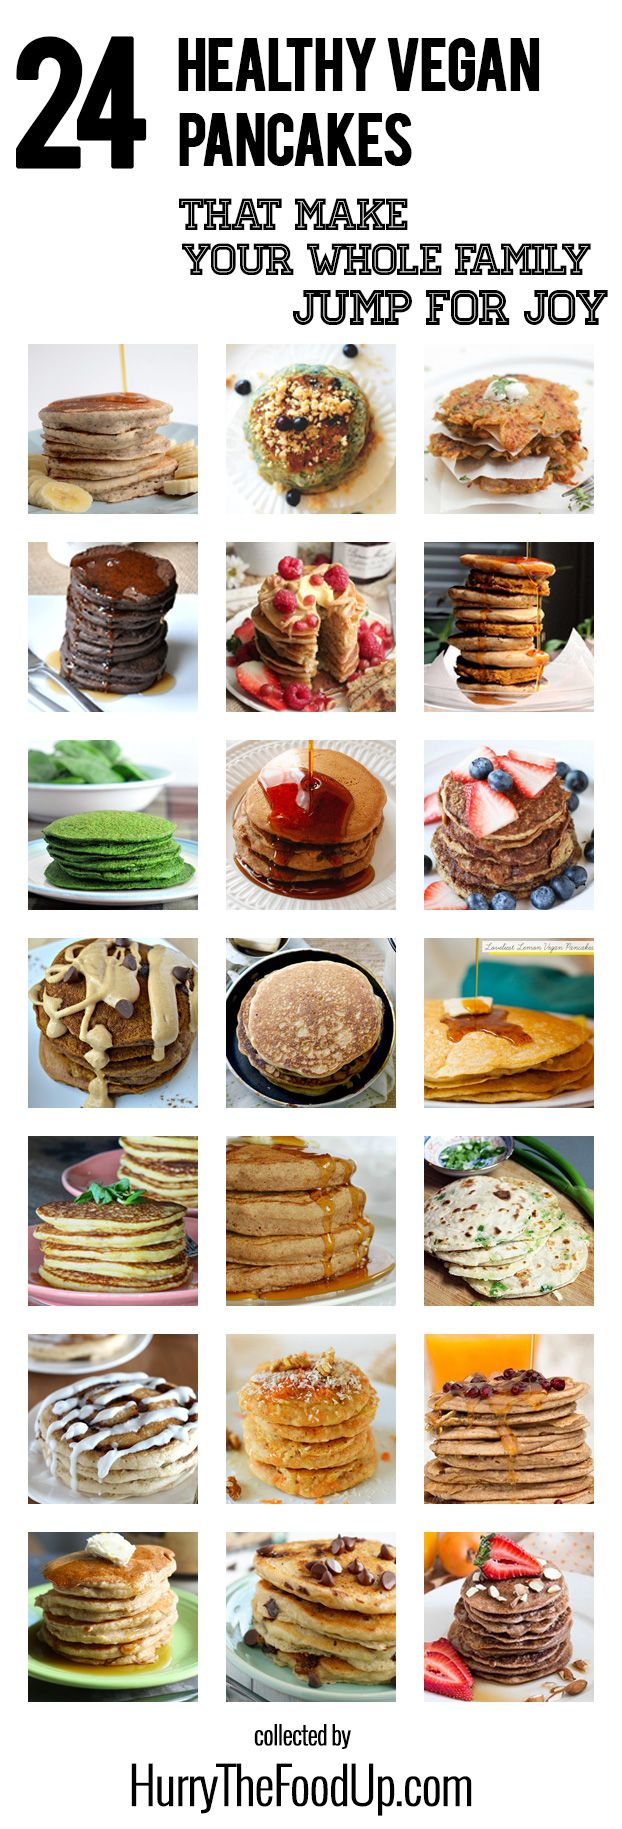 The Definitive Collection of Healthy Vegan Pancakes Recipes #vegan #pancakes | hurrythefoodup.com